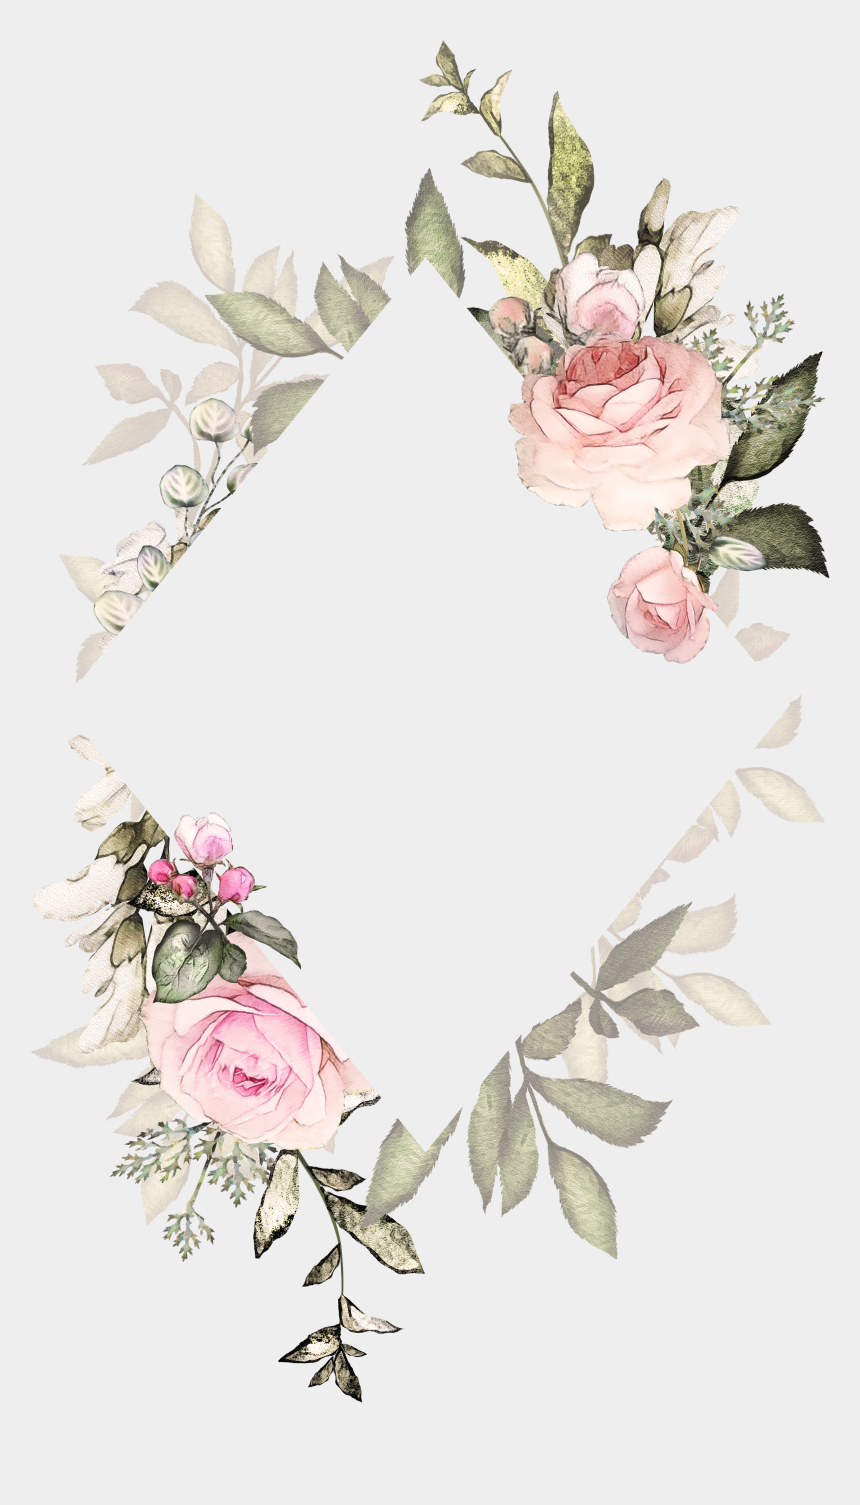 flower background clipart, Cartoons - Discover Ideas About Phone Backgrounds - Wedding Invitation Transparent Background